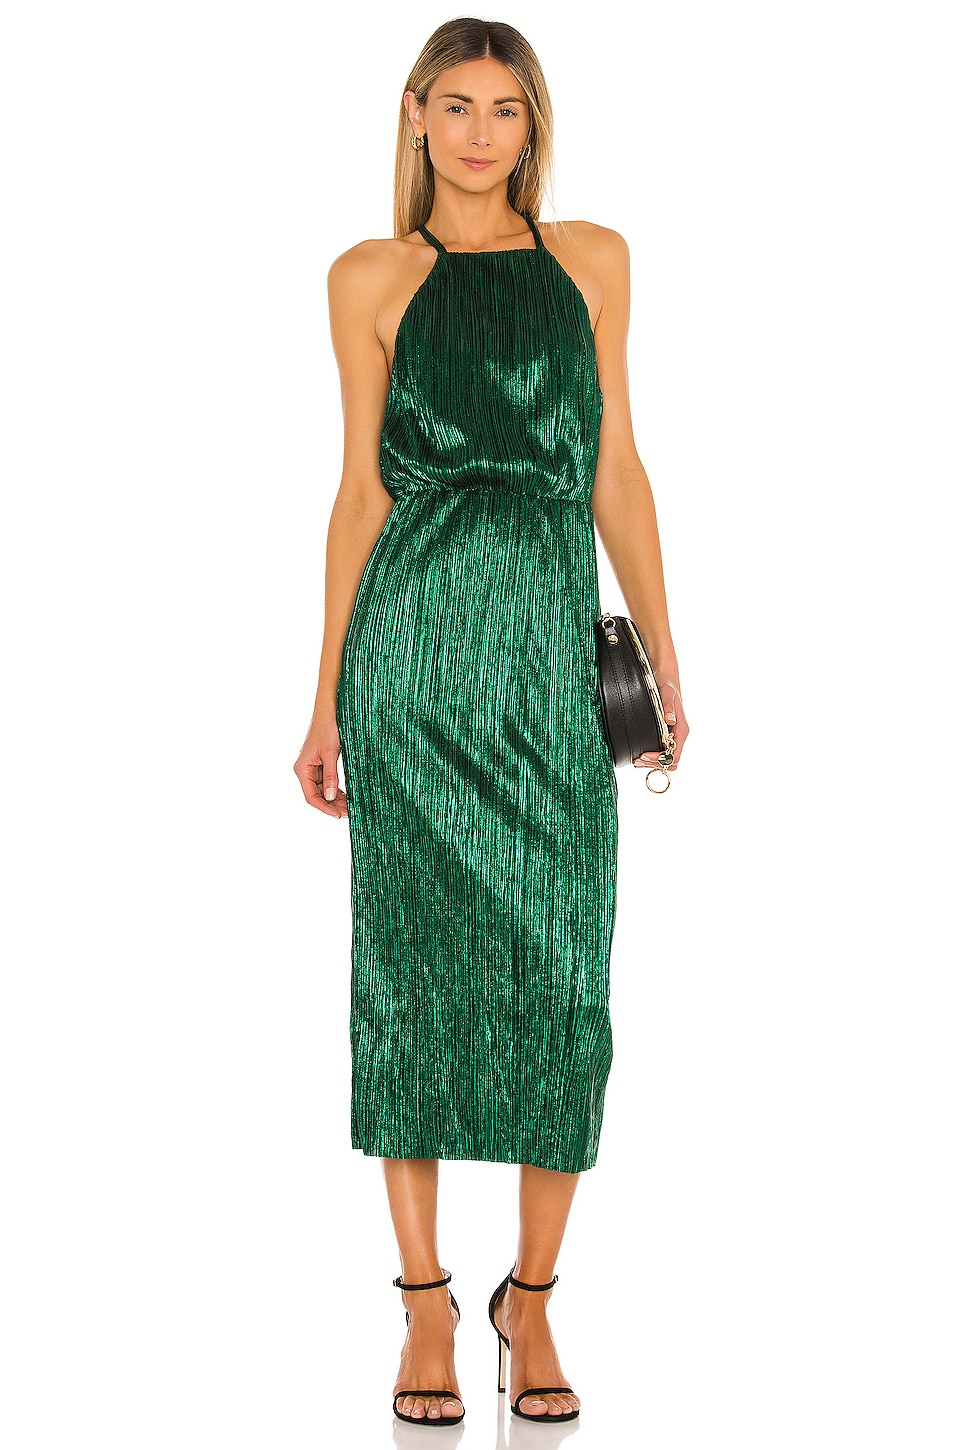 House of Harlow 1960 x REVOLVE Farrah Dress in Emerald